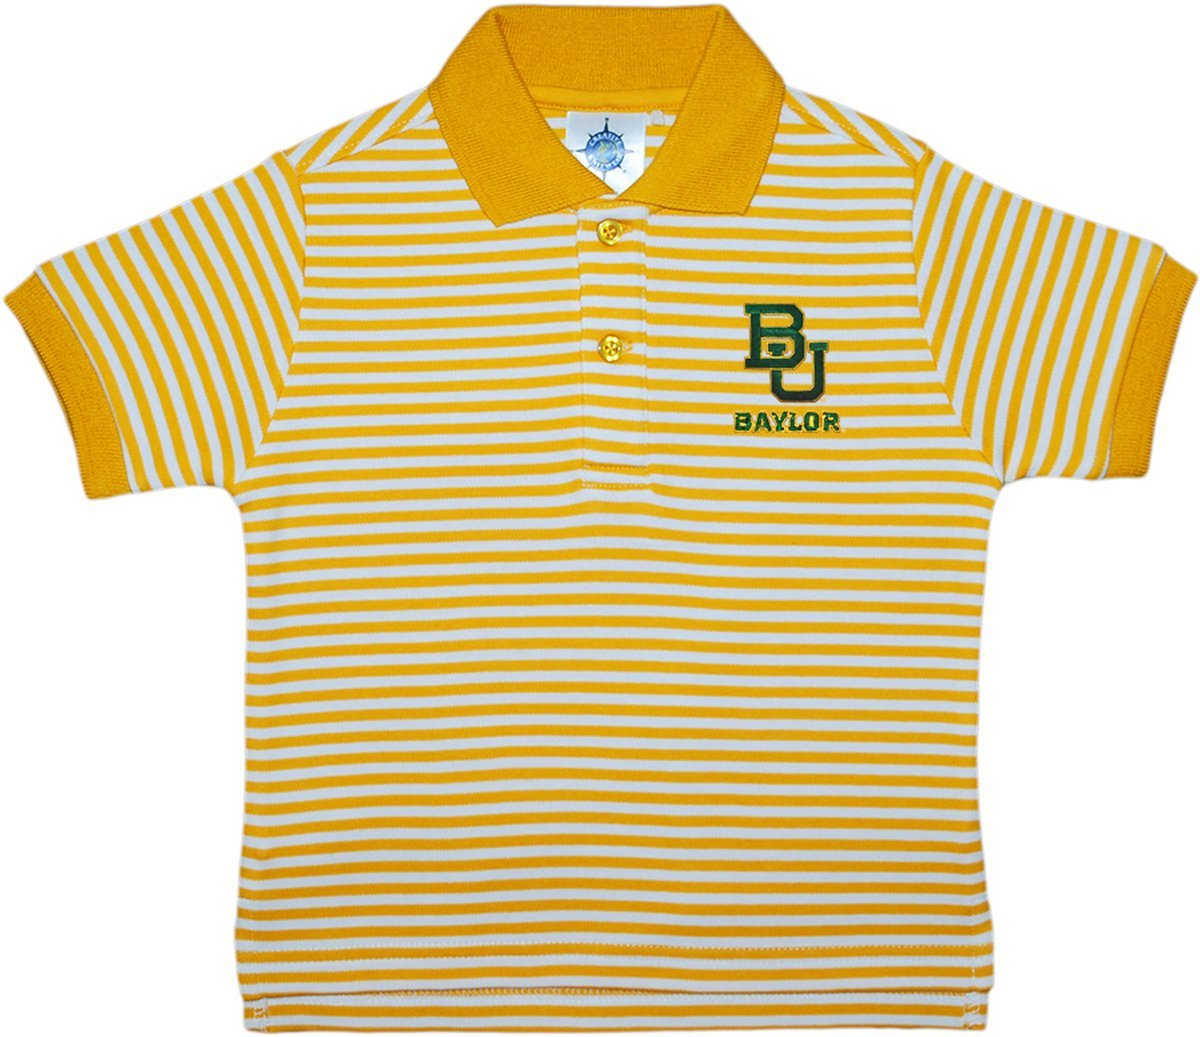 Creative Knitwear Baylor University Bears Striped Polo Shirt Gold/White by Creative Knitwear